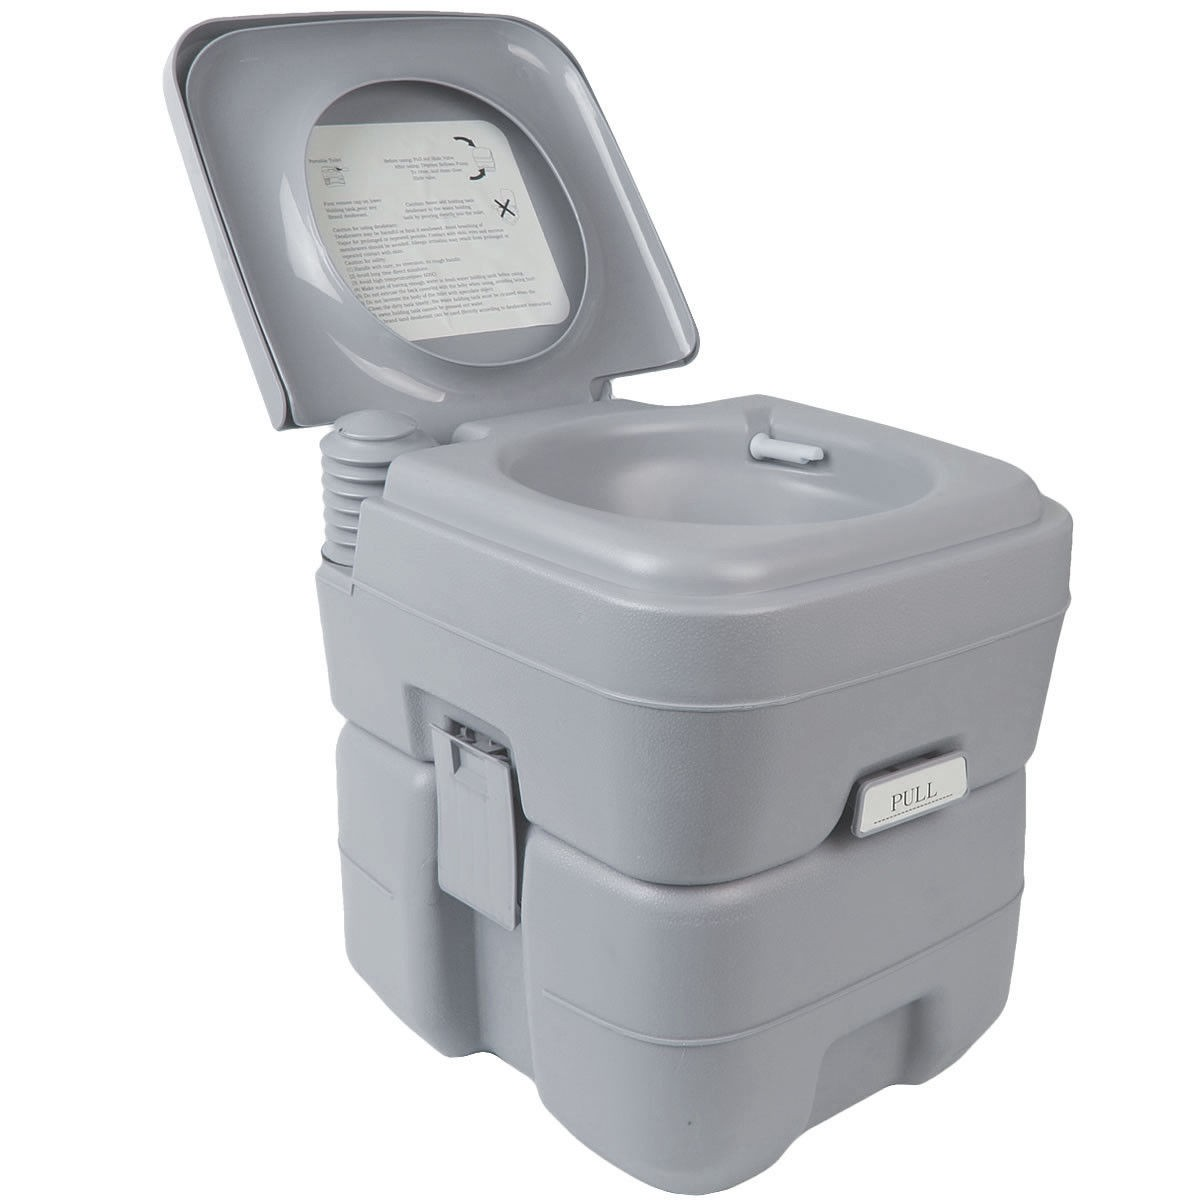 Outdoor 5 Gal Portable Outdoor Camping Recreation Toilet by Apontus